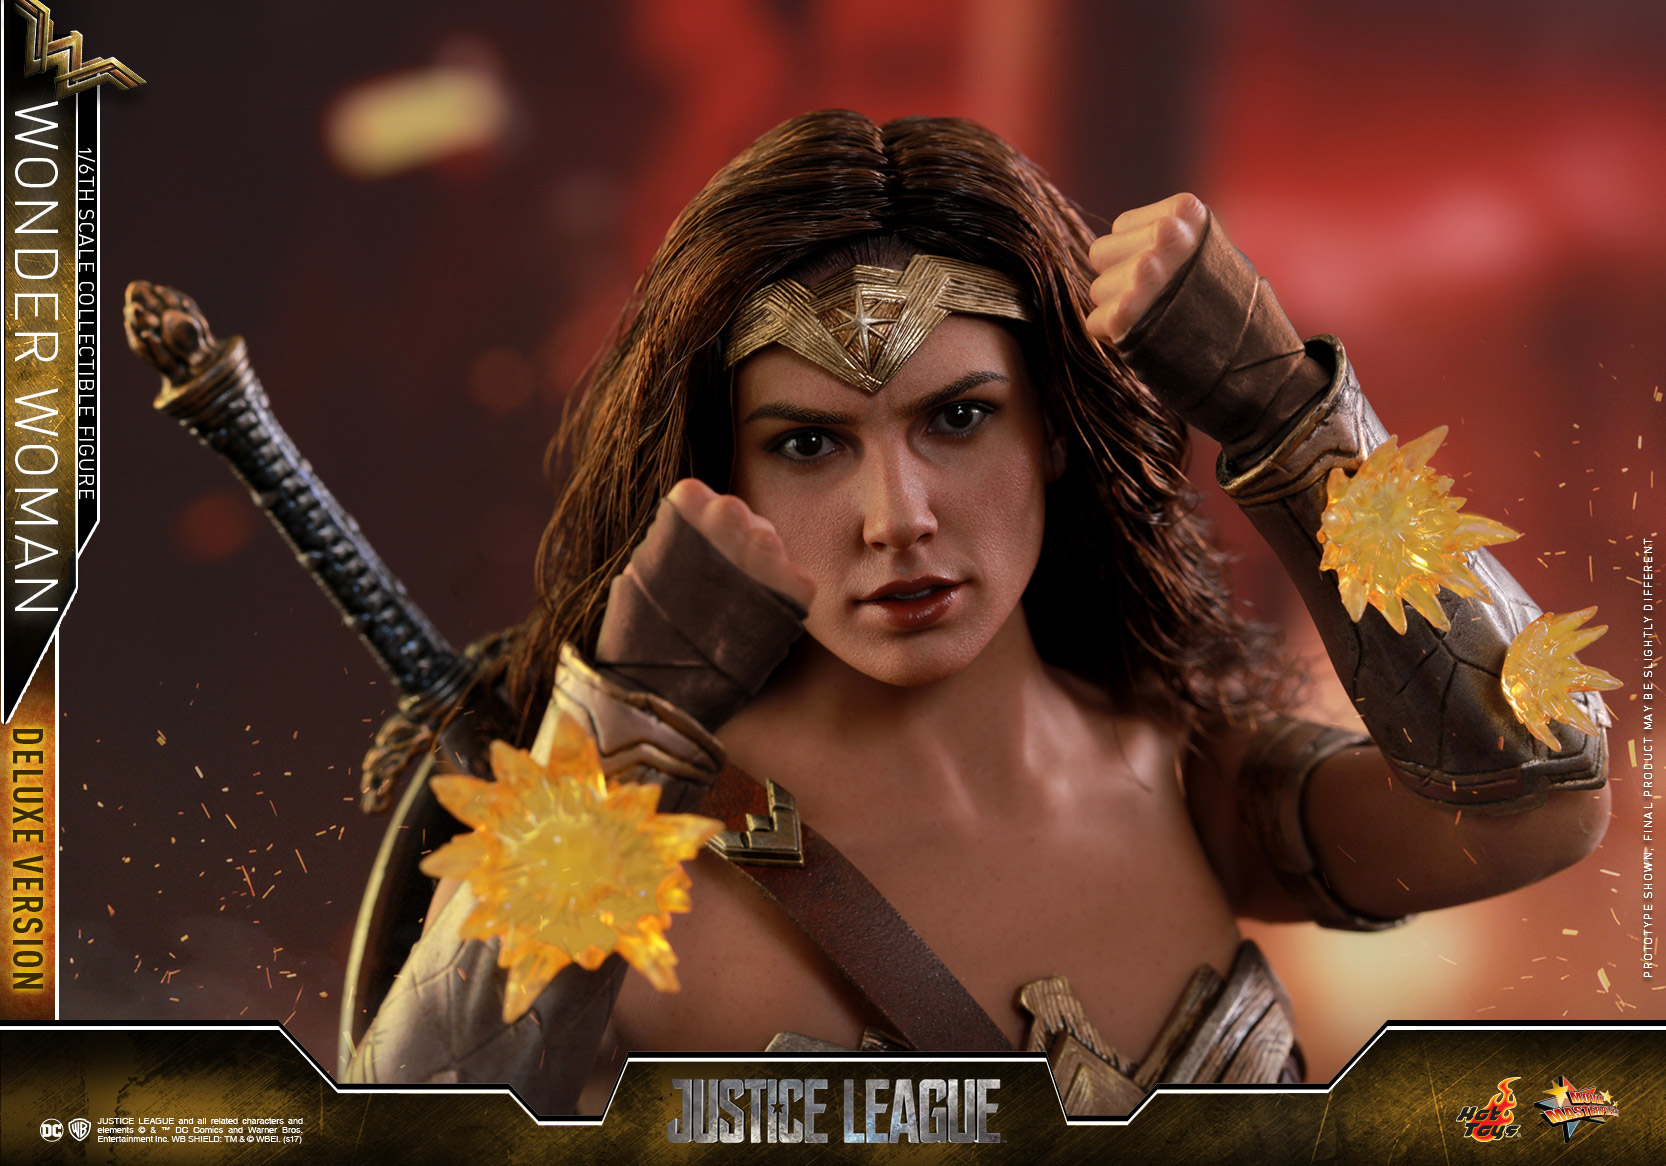 Hot-Toys-Justice-League-Wonder-Woman-collectible-figure-Deluxe_PR-20.jpg